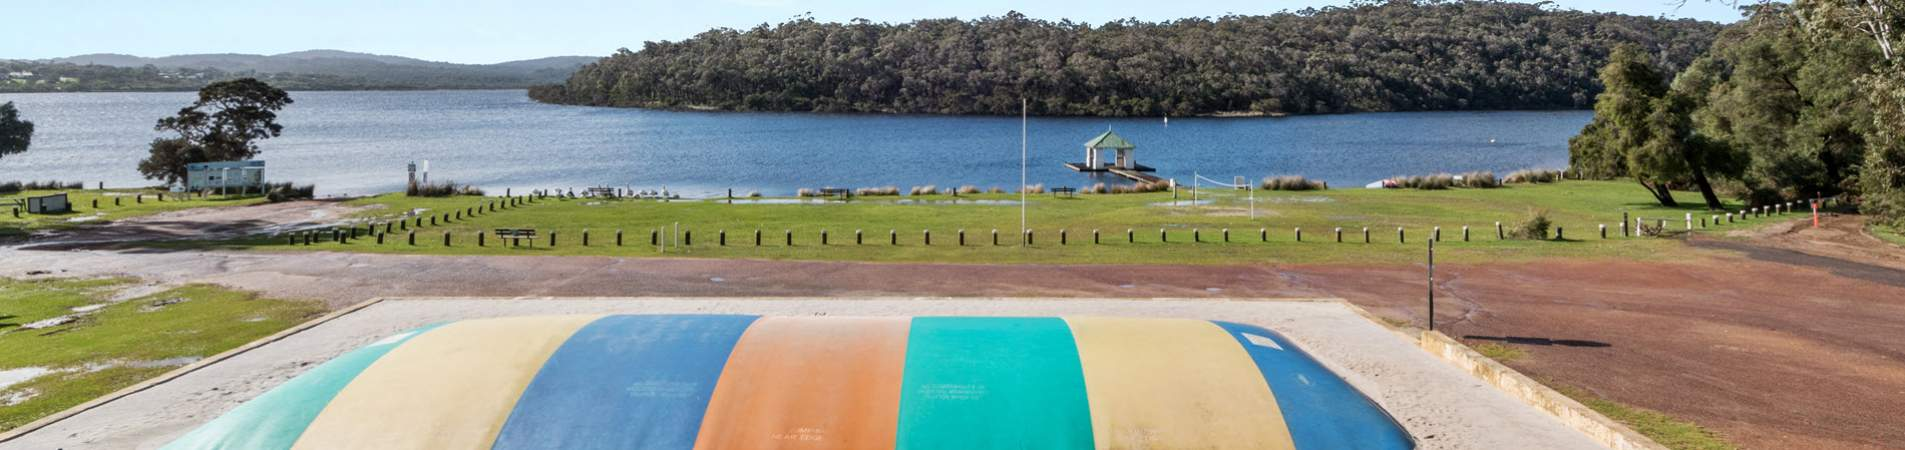 walpole rest point caravan park - banner 4